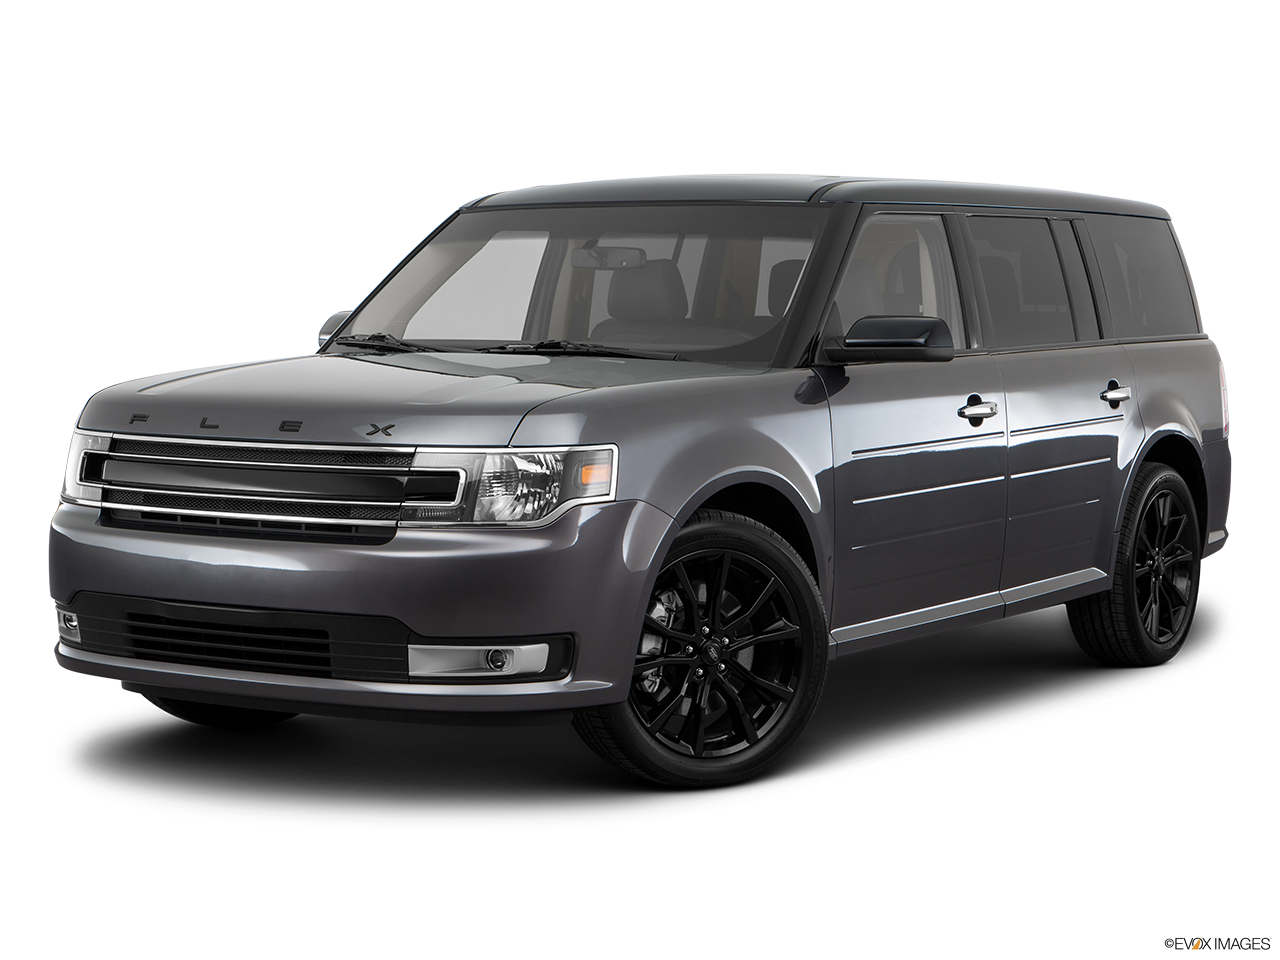 Test Drive A 2016 Ford Flex at All Star Ford Canton in Canton